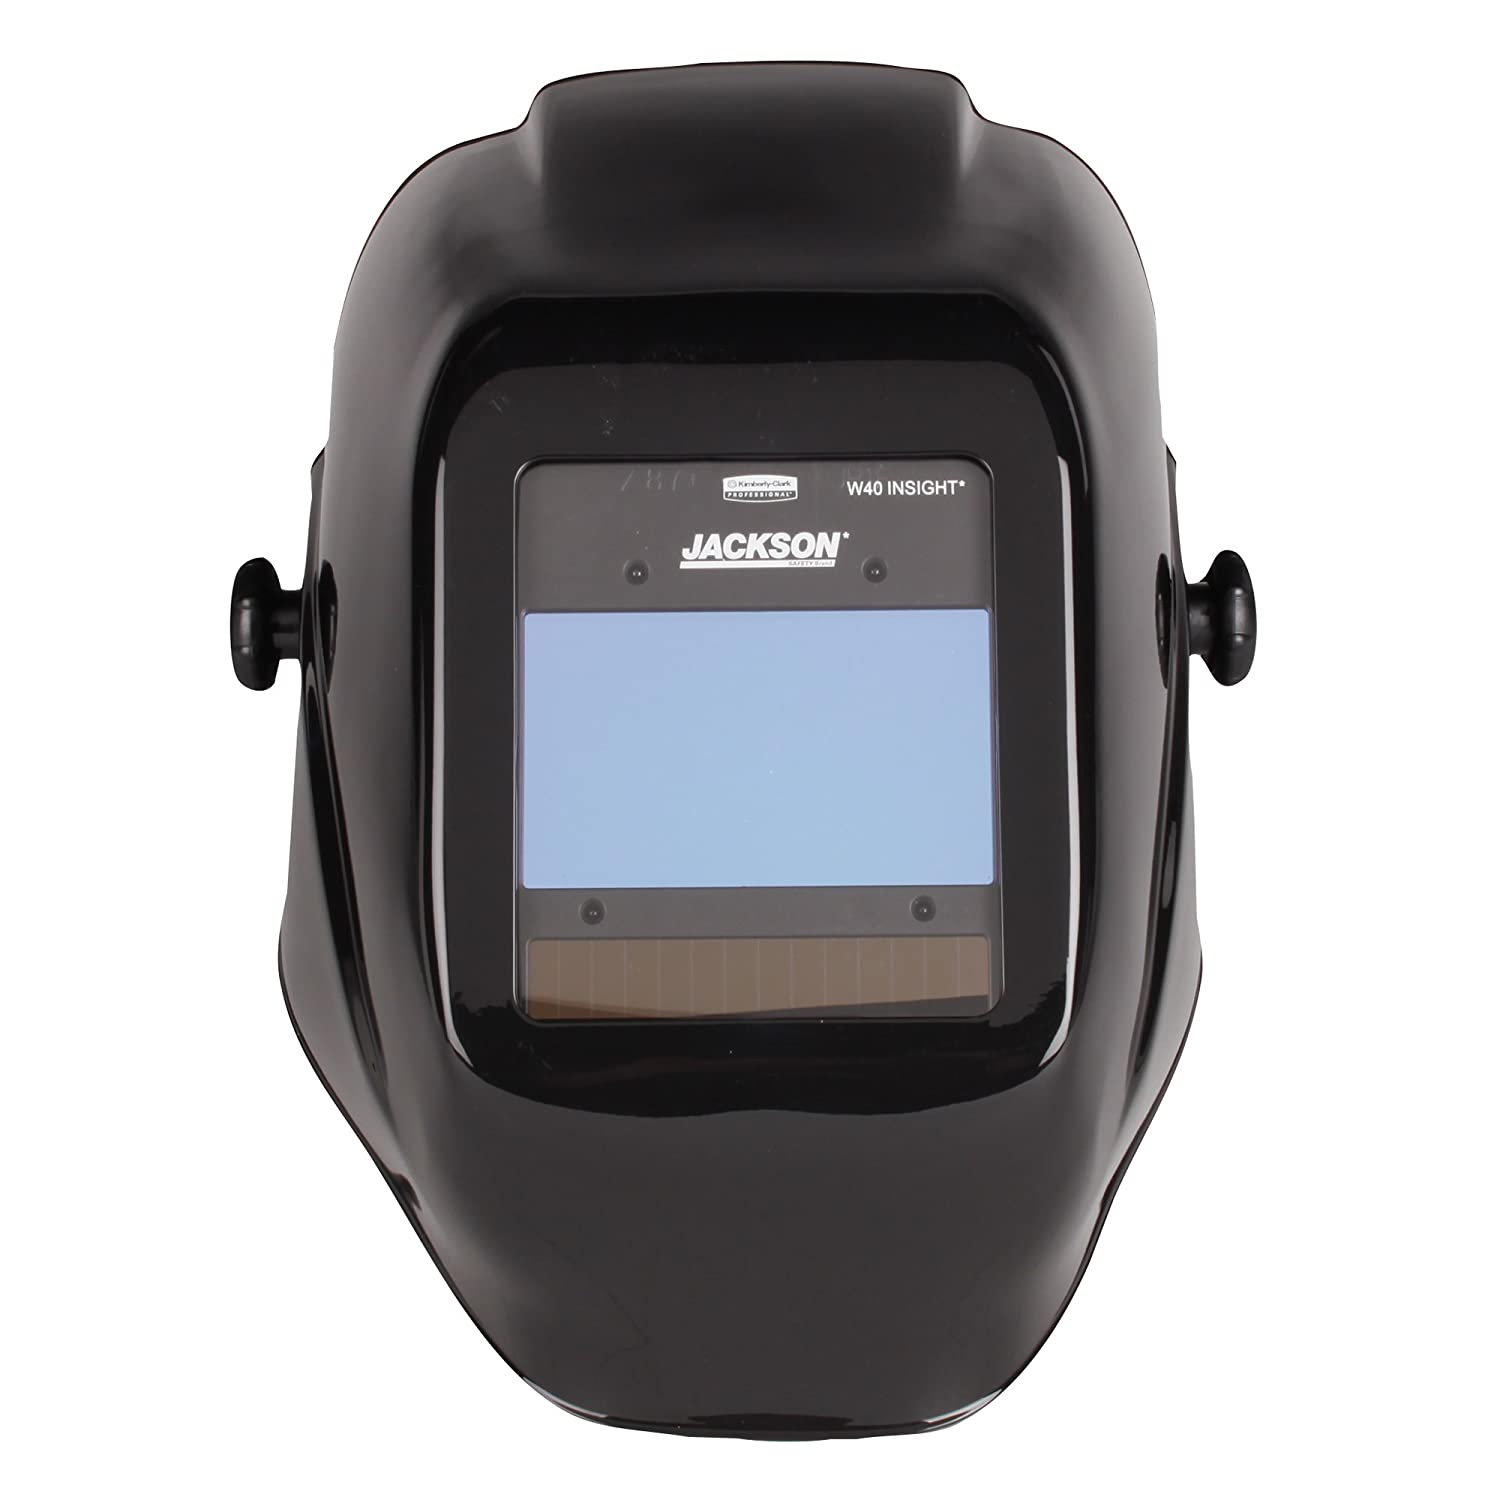 Jackson seguridad Insight variable Auto oscurecimiento casco de soldadura, Halox, ADF, Negro: Amazon.es: Industria, empresas y ciencia